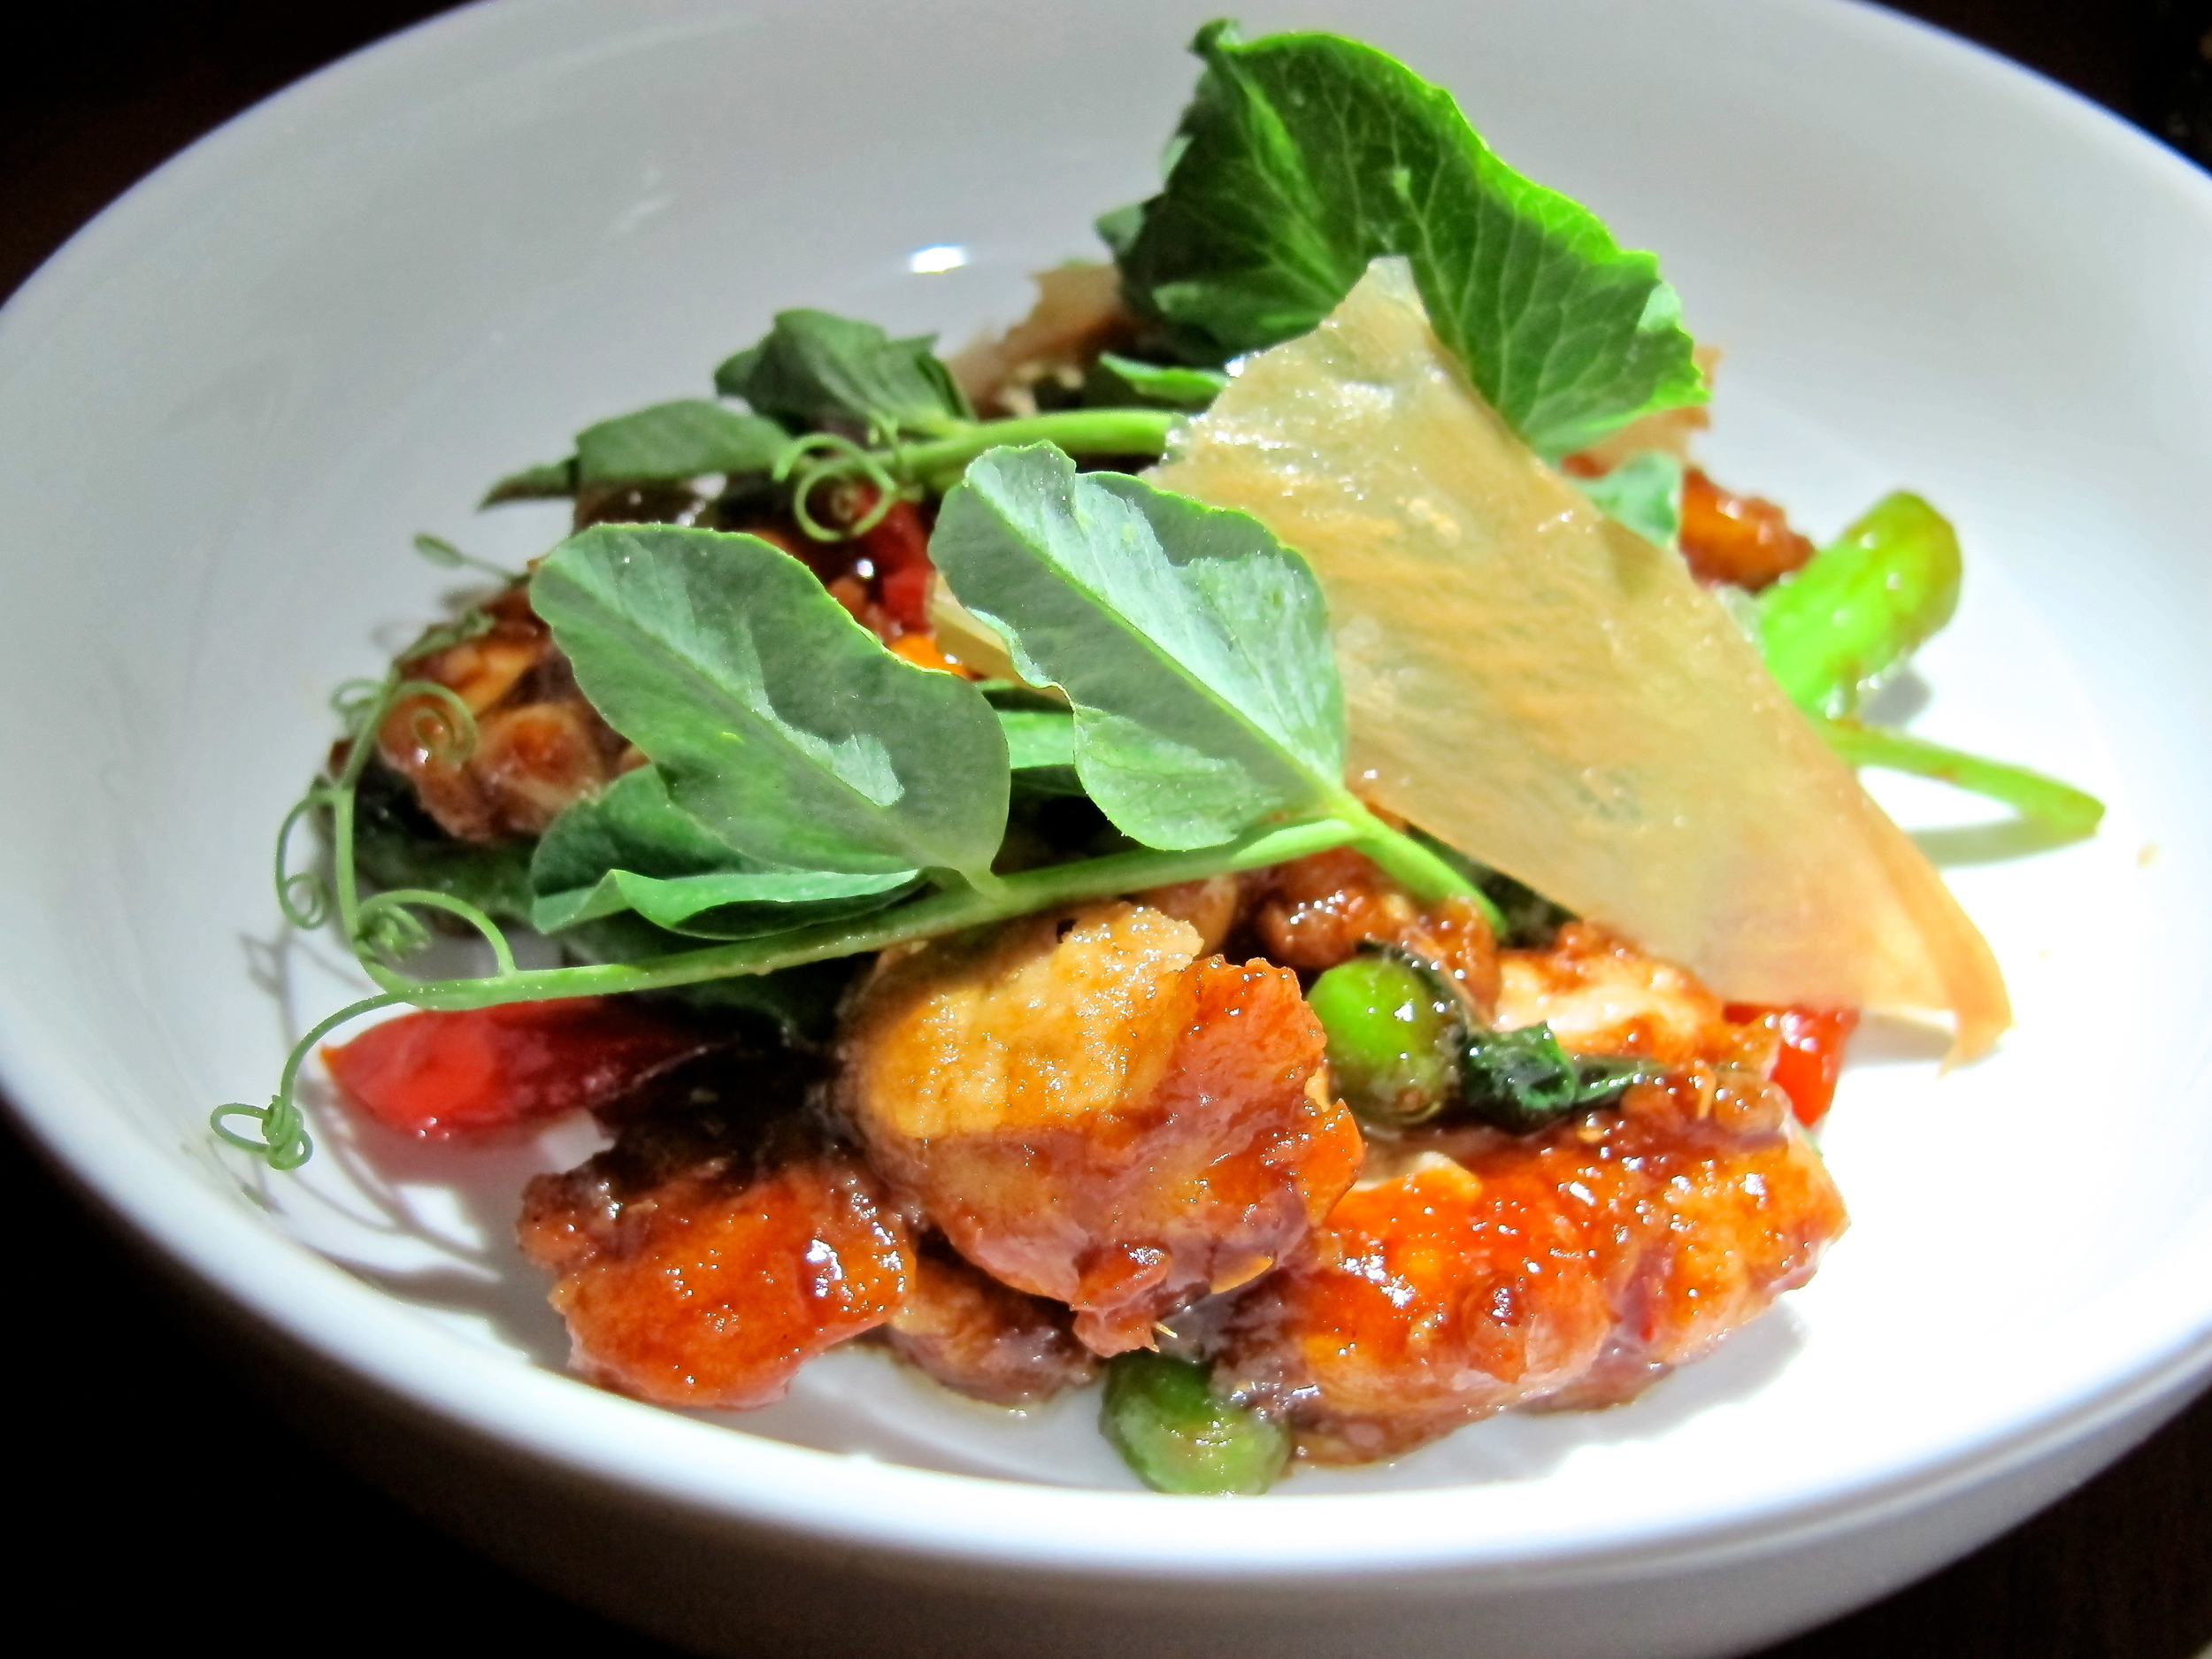 If you've been nervous to try sweetbreads in the past, then here's a great starter dish for you. The Kung pao spices filled it with so much flavor, you had to ask again what you were eating.